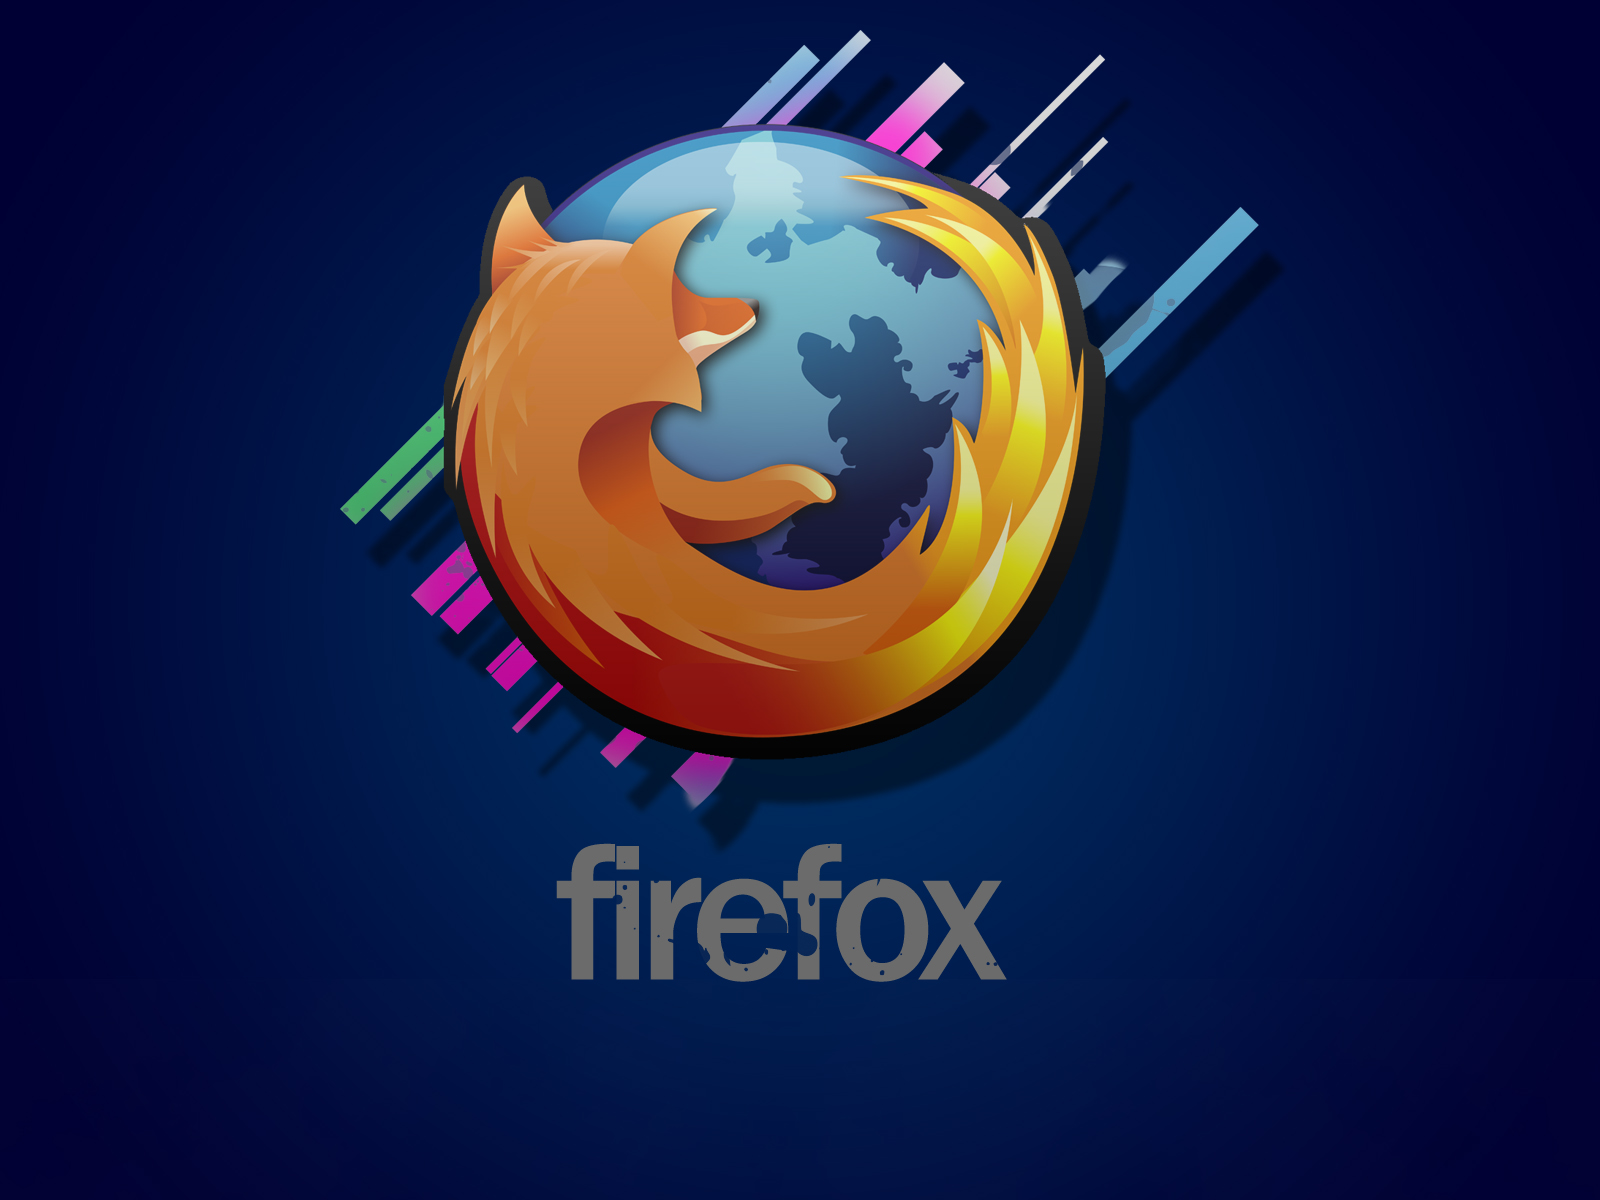 Firefox HD Wallpapers Mozilla Background